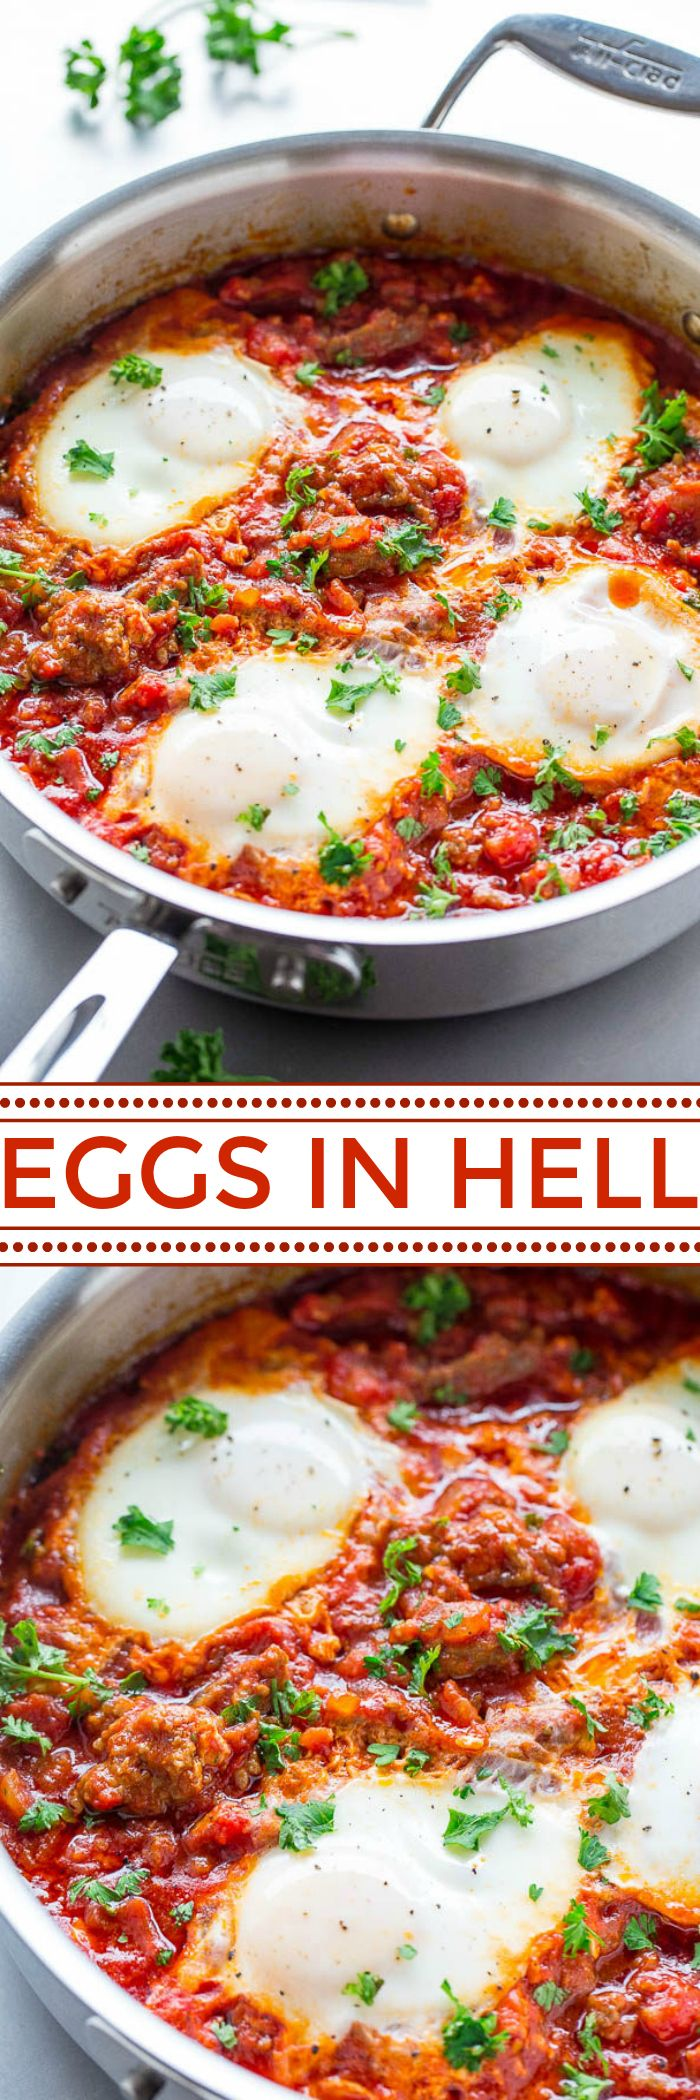 Eggs In Hell with Italian Sausage | Recipe | **Delish ...